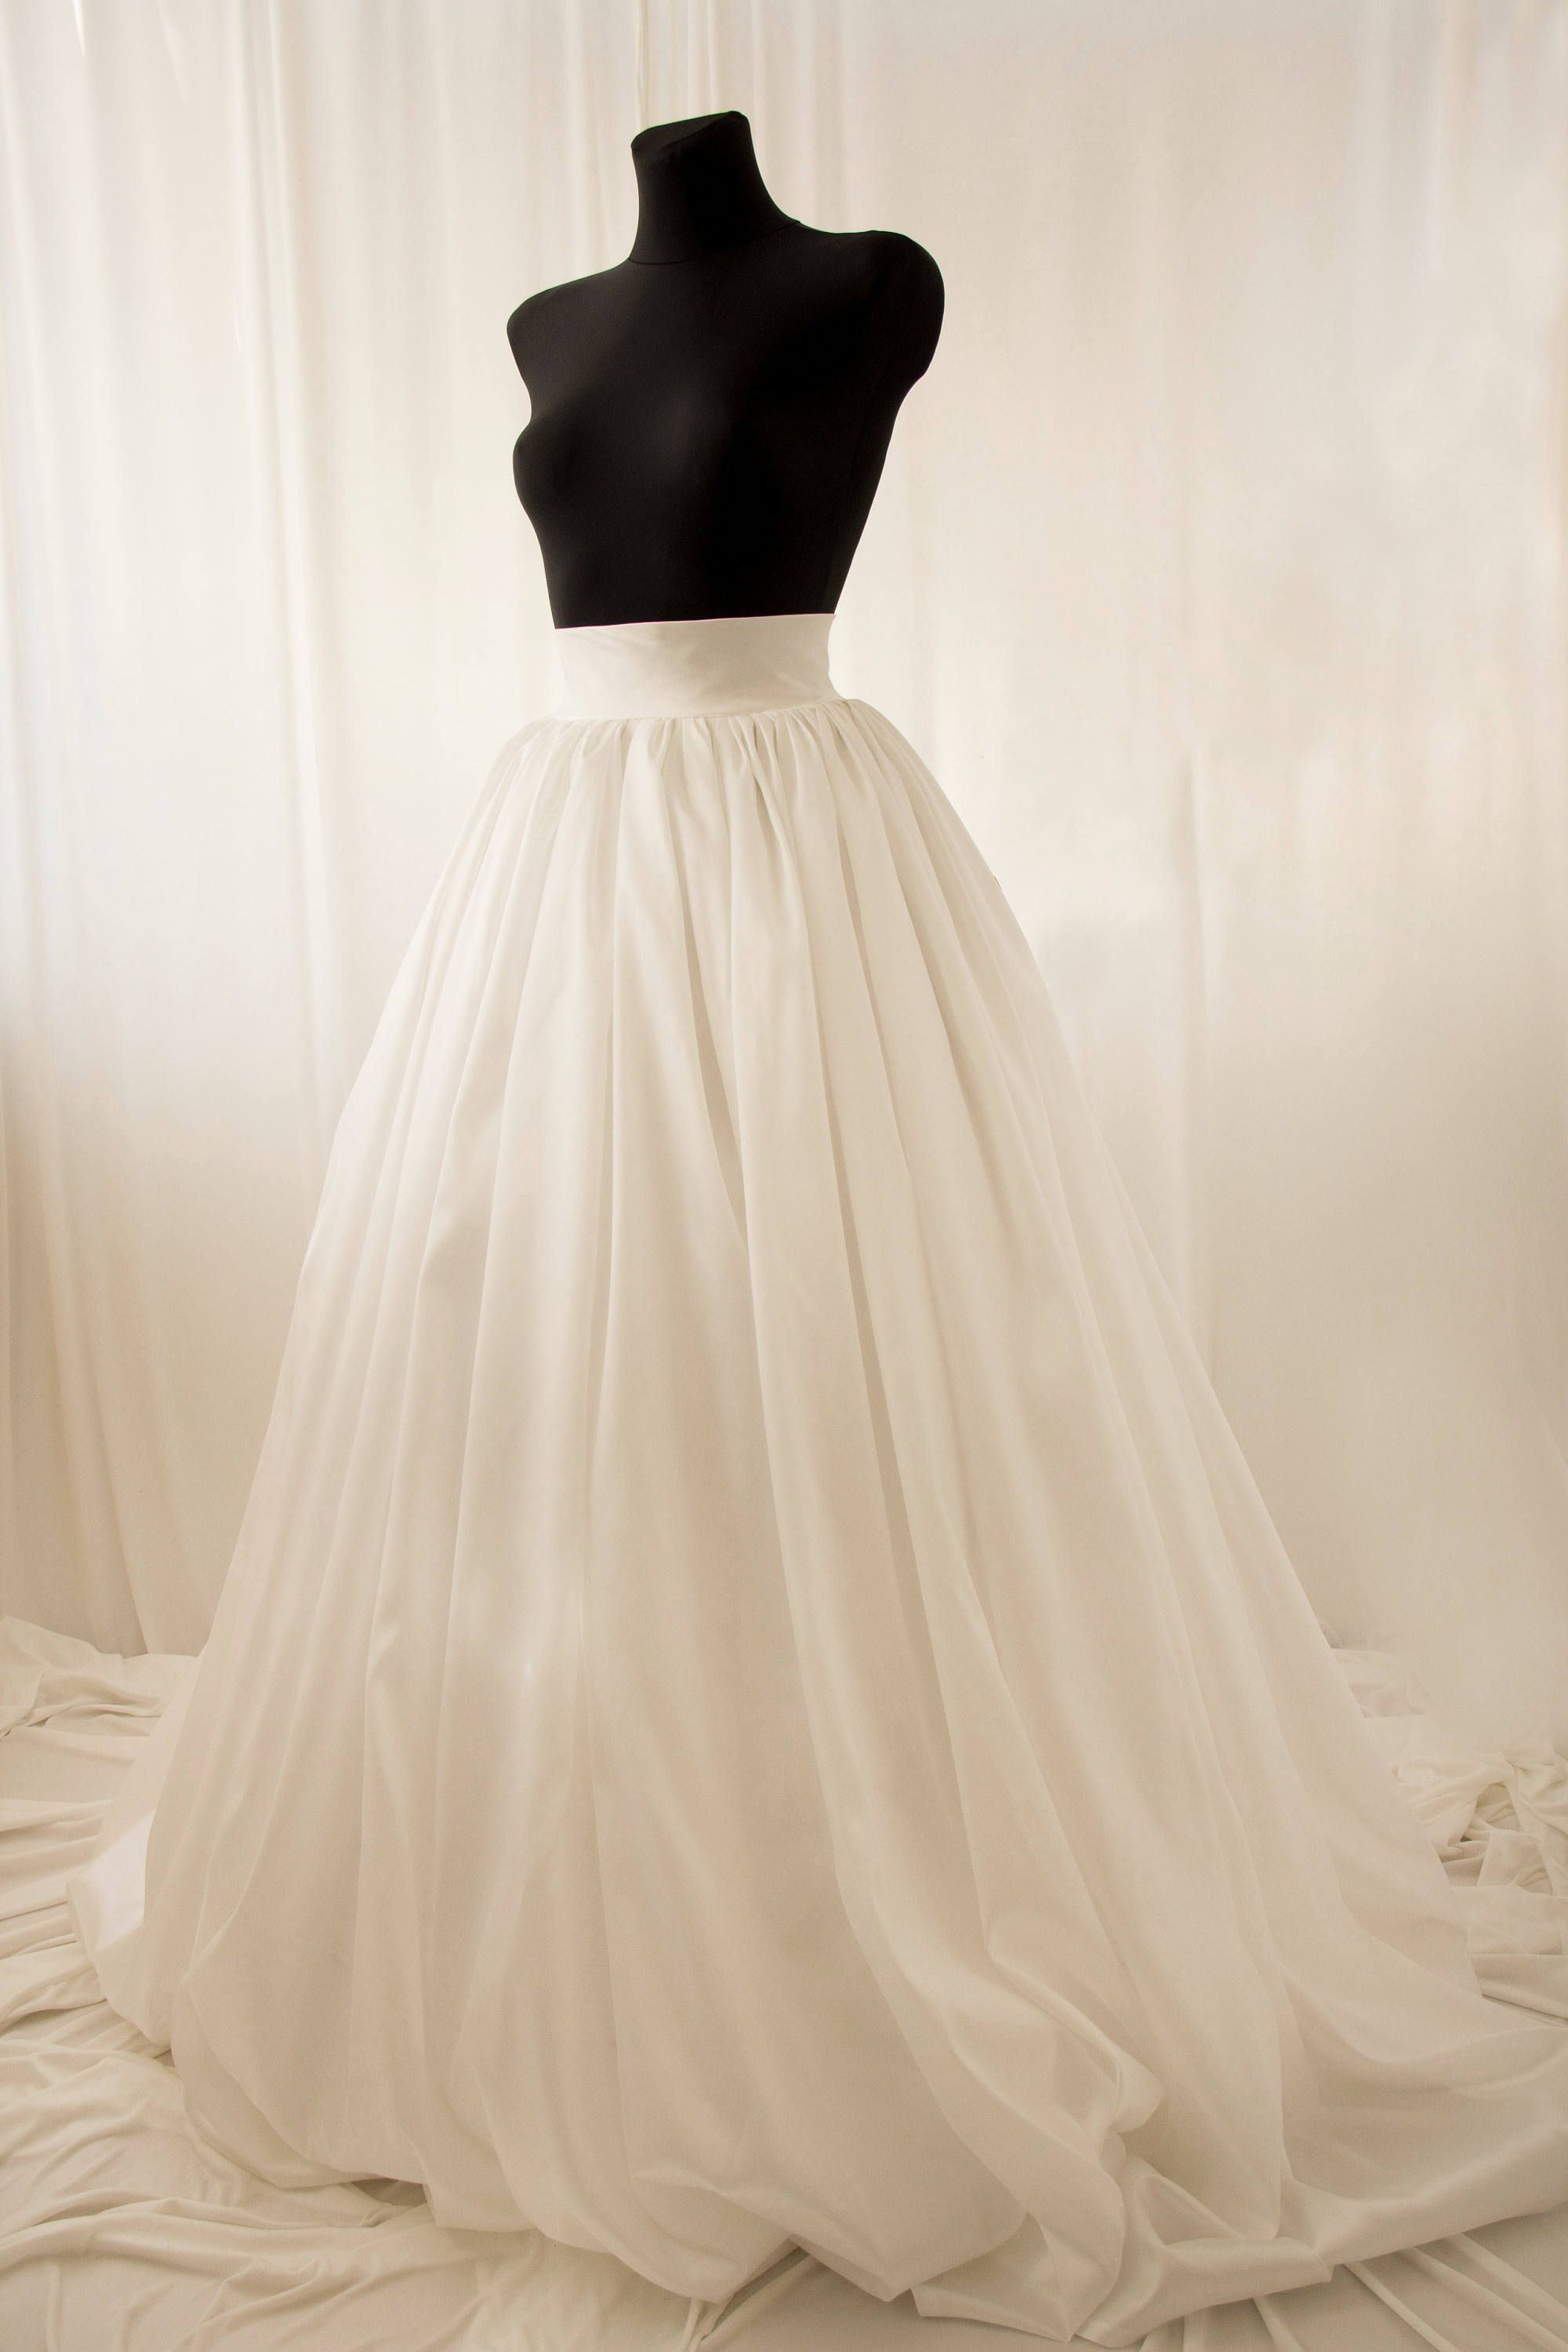 Taffeta Skirt, Ball Gown Skirt, Ivory Wedding Skirt, Wedding Skirt ...